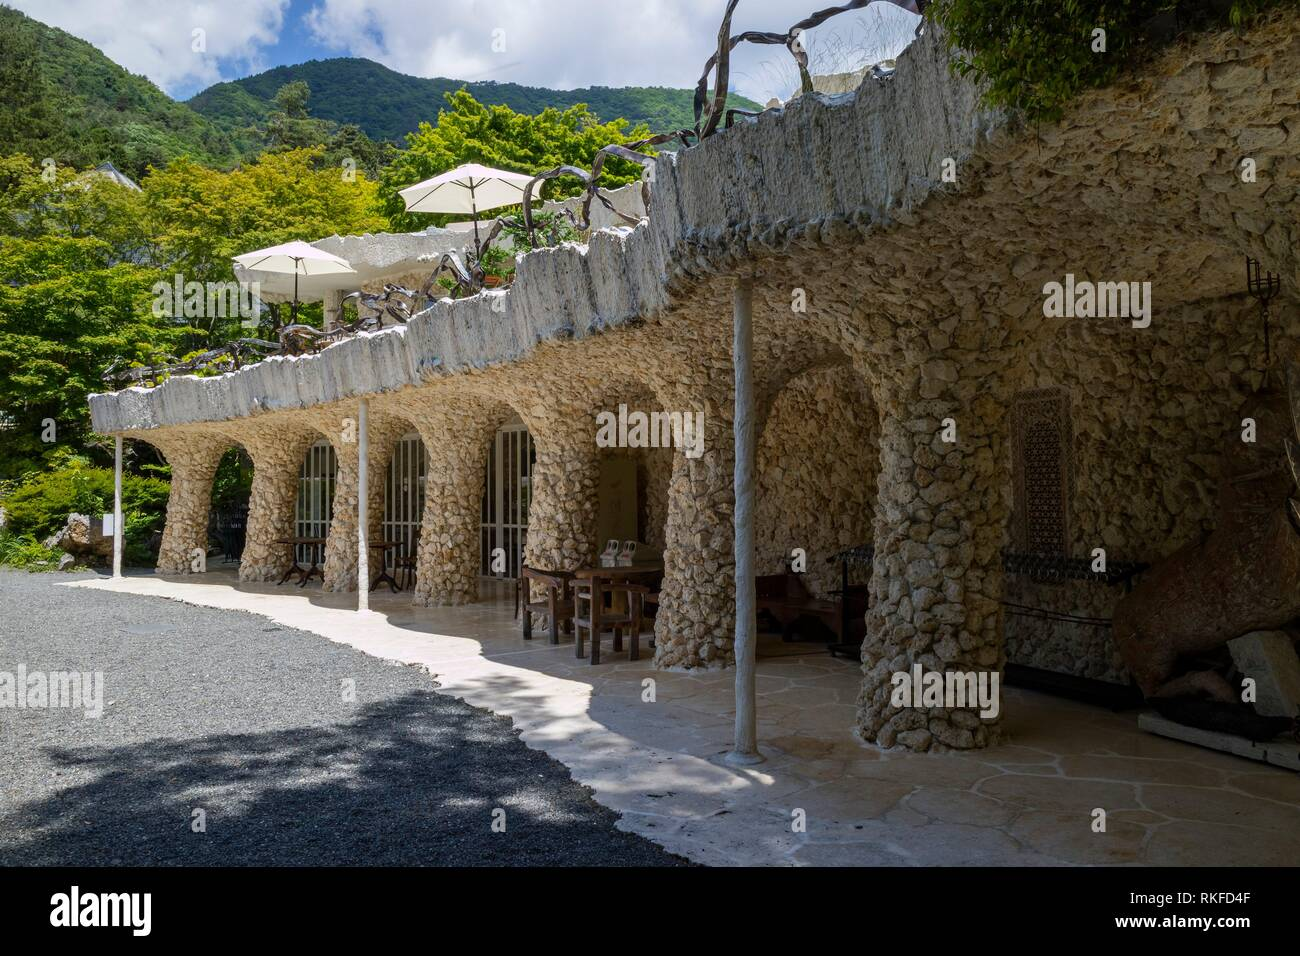 Exterior of the Kubota Itchiku Art Museum in the five lake area inspired by Gaudi. - Stock Image